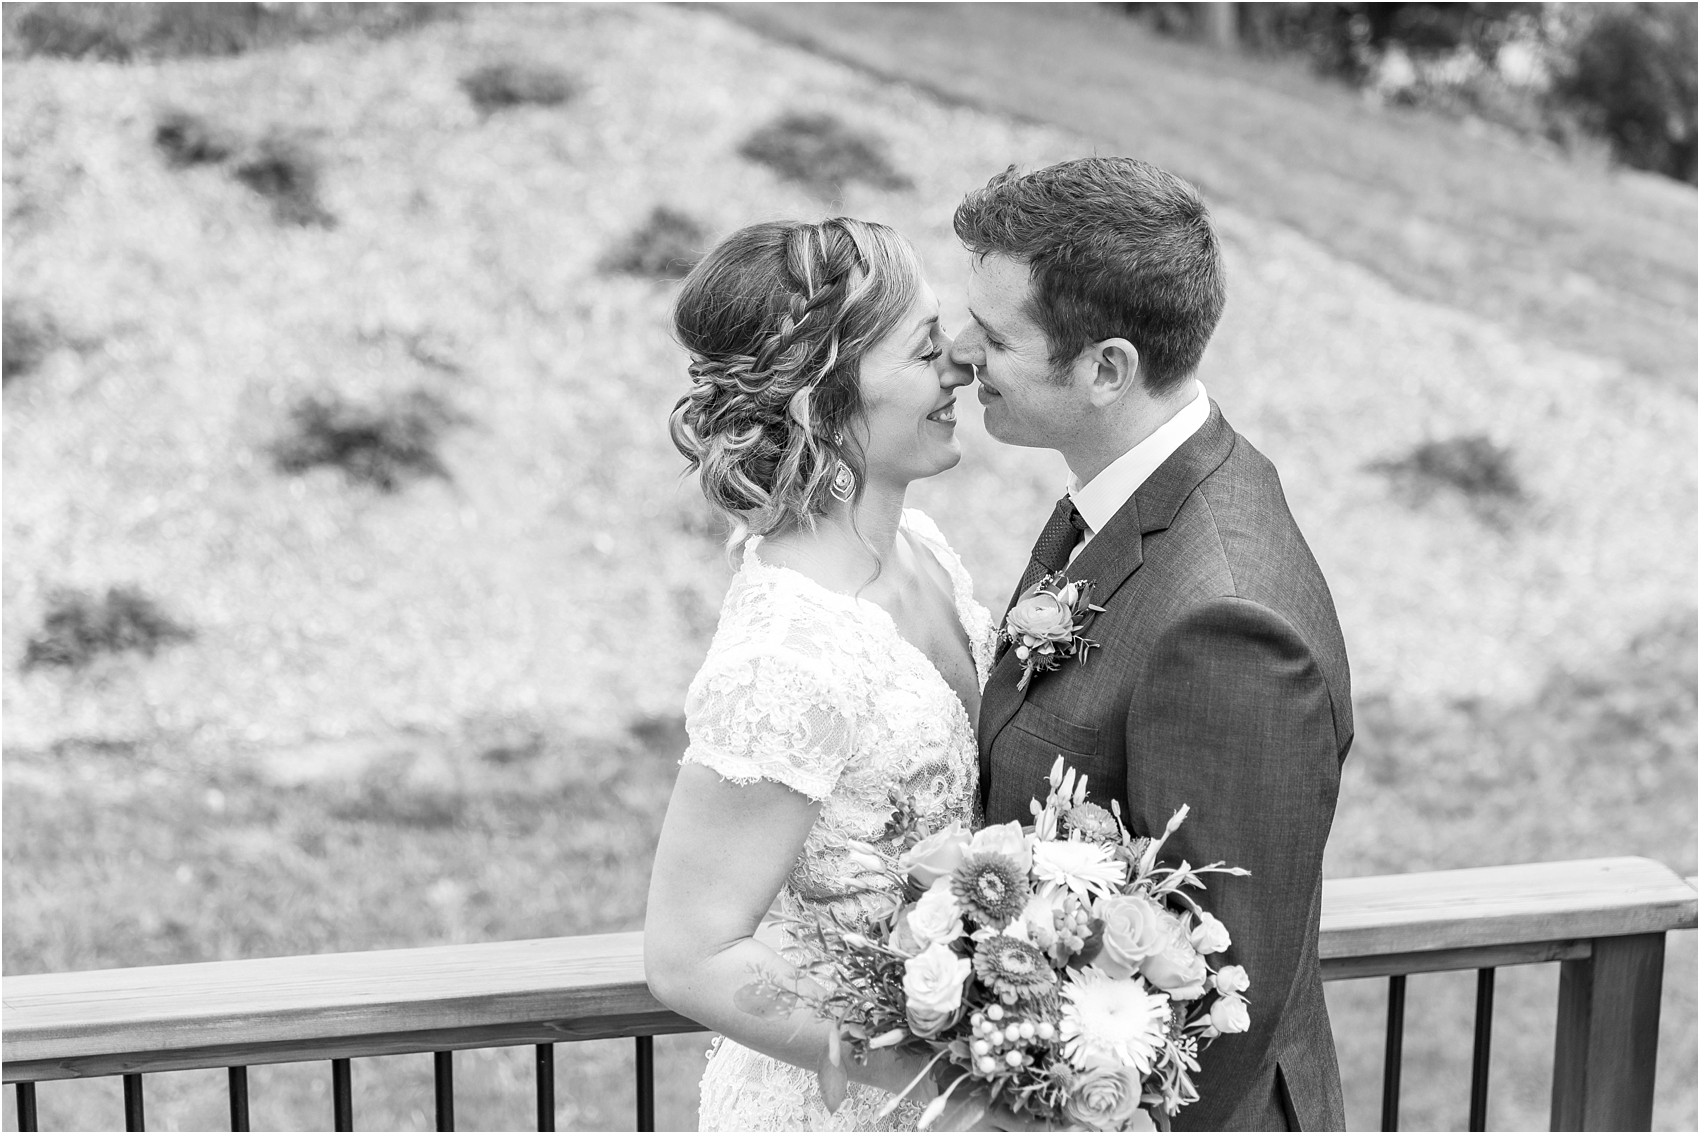 romantic-intimate-backyard-wedding-photos-at-private-estate-in-ann-arbor-mi-by-courtney-carolyn-photography_0033.jpg